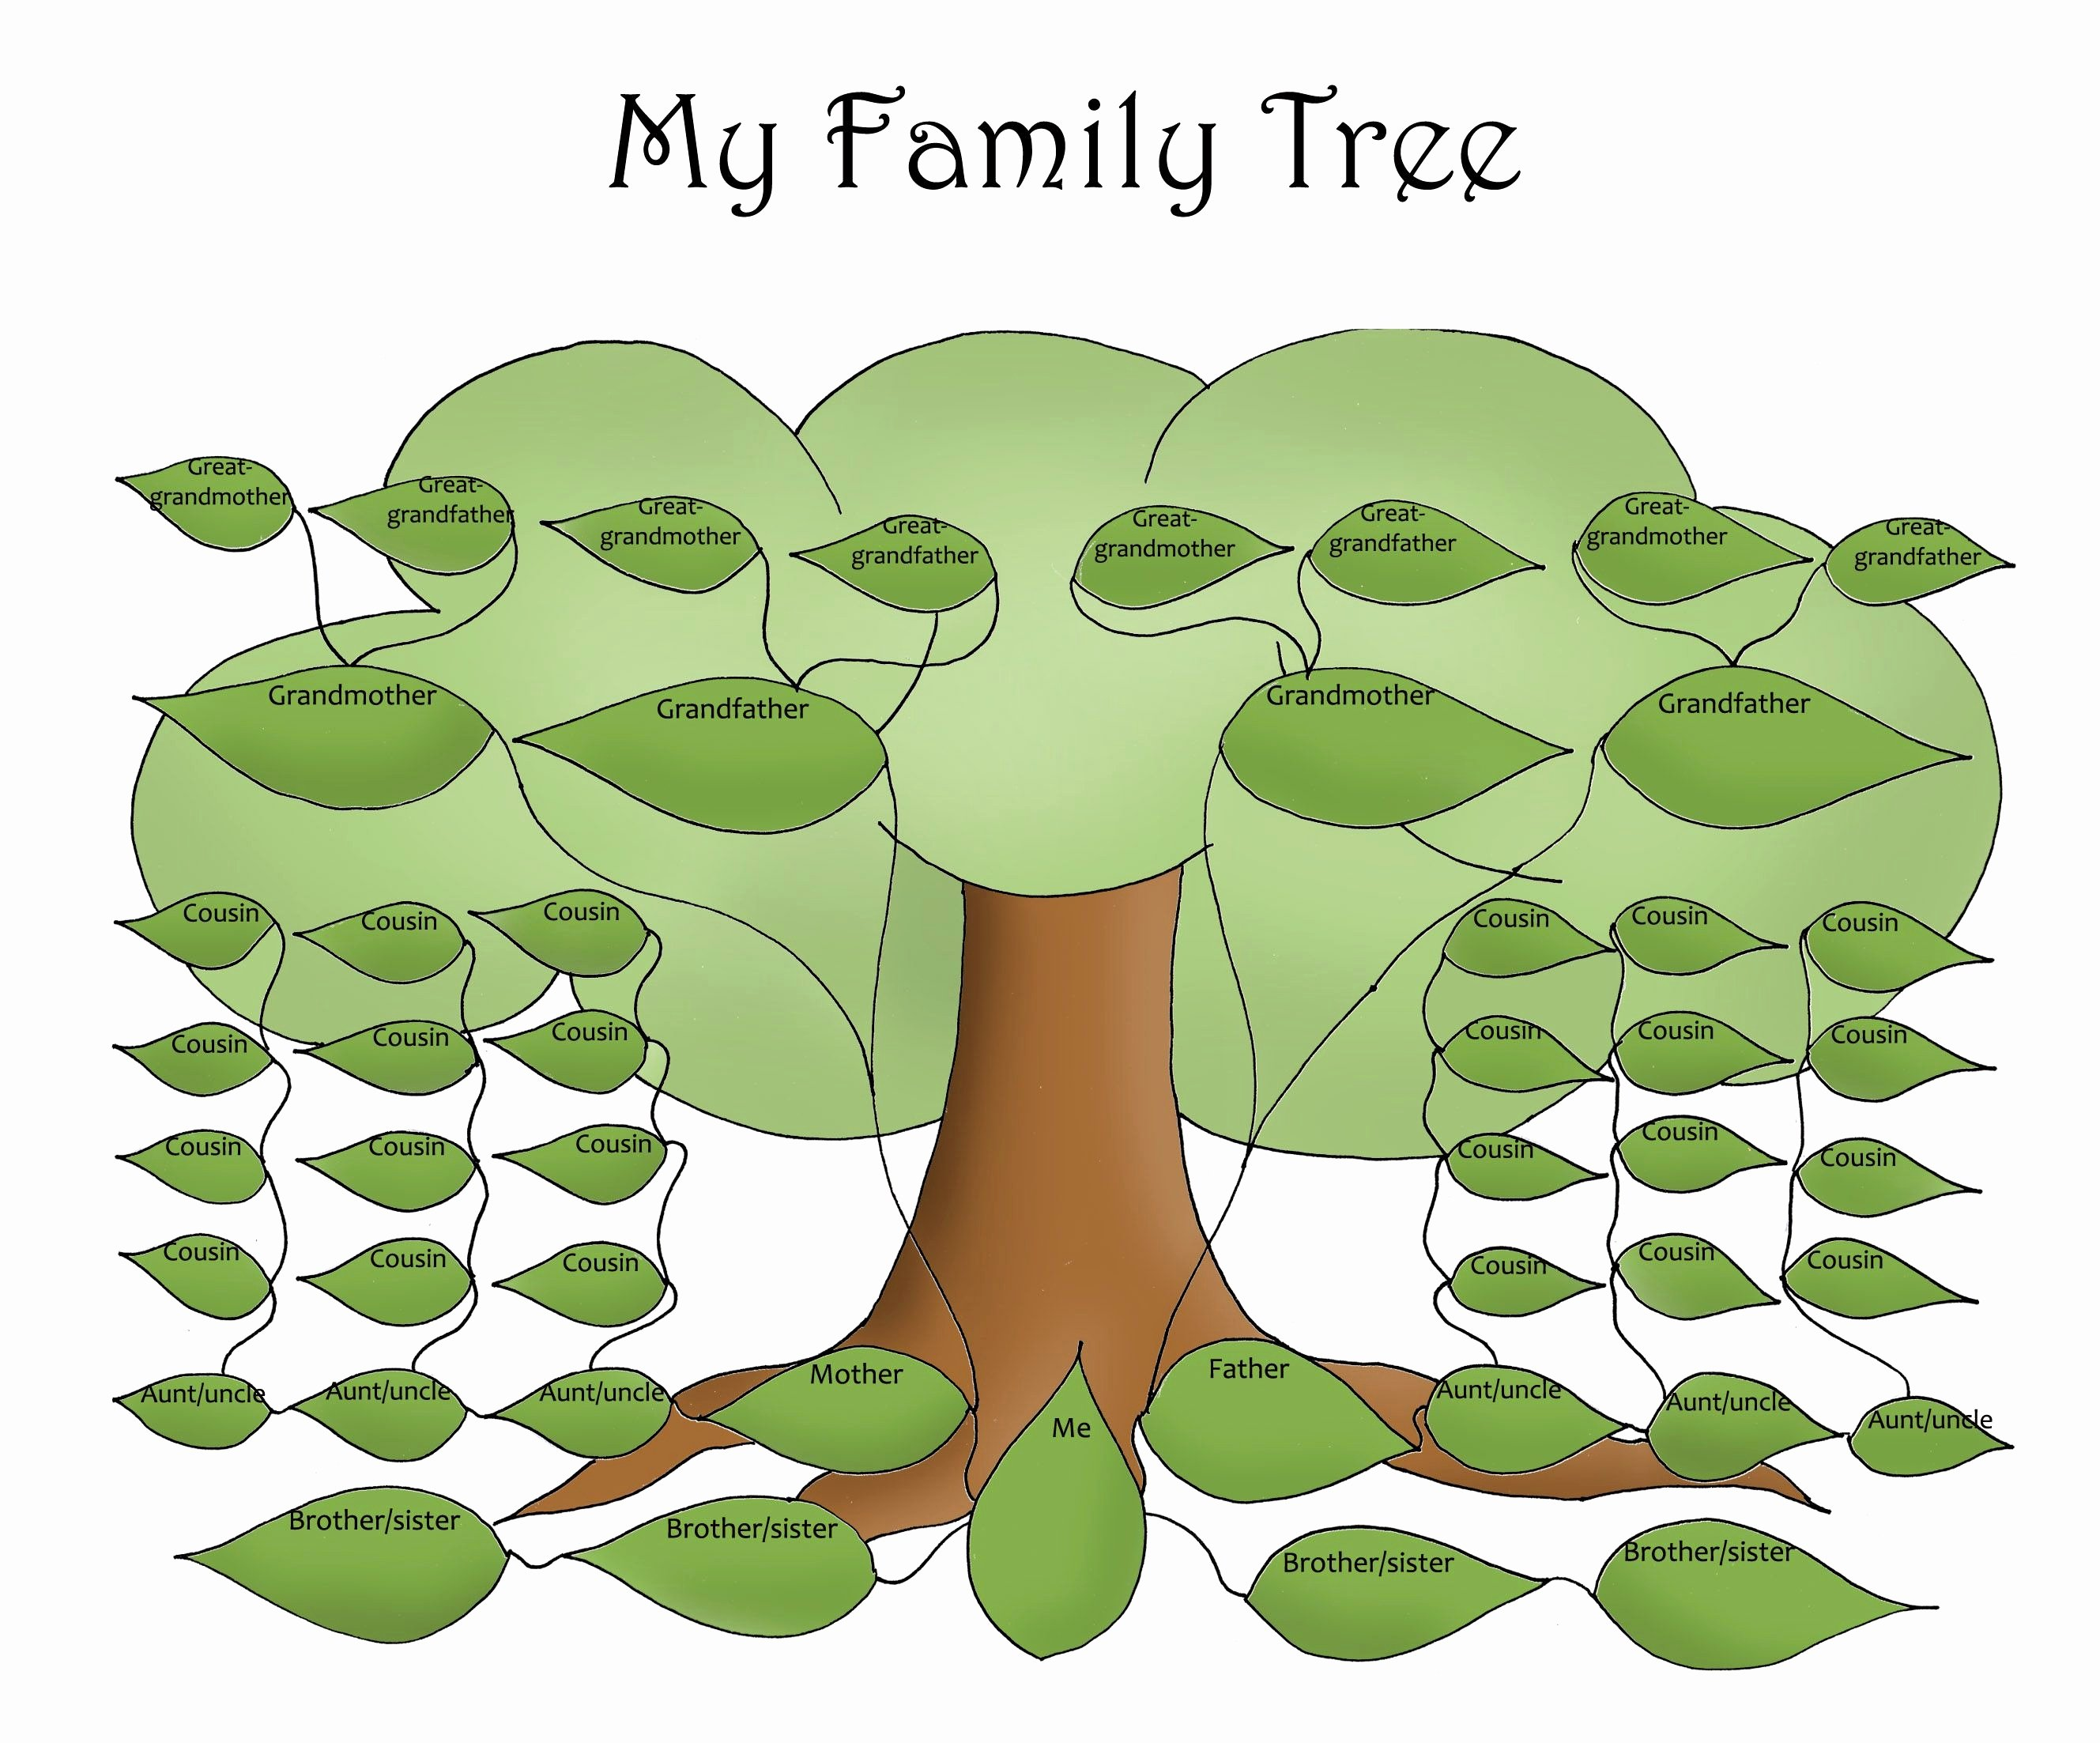 Family Tree Template Free Editable Fresh Free Editable Family Tree Template Daily Roabox